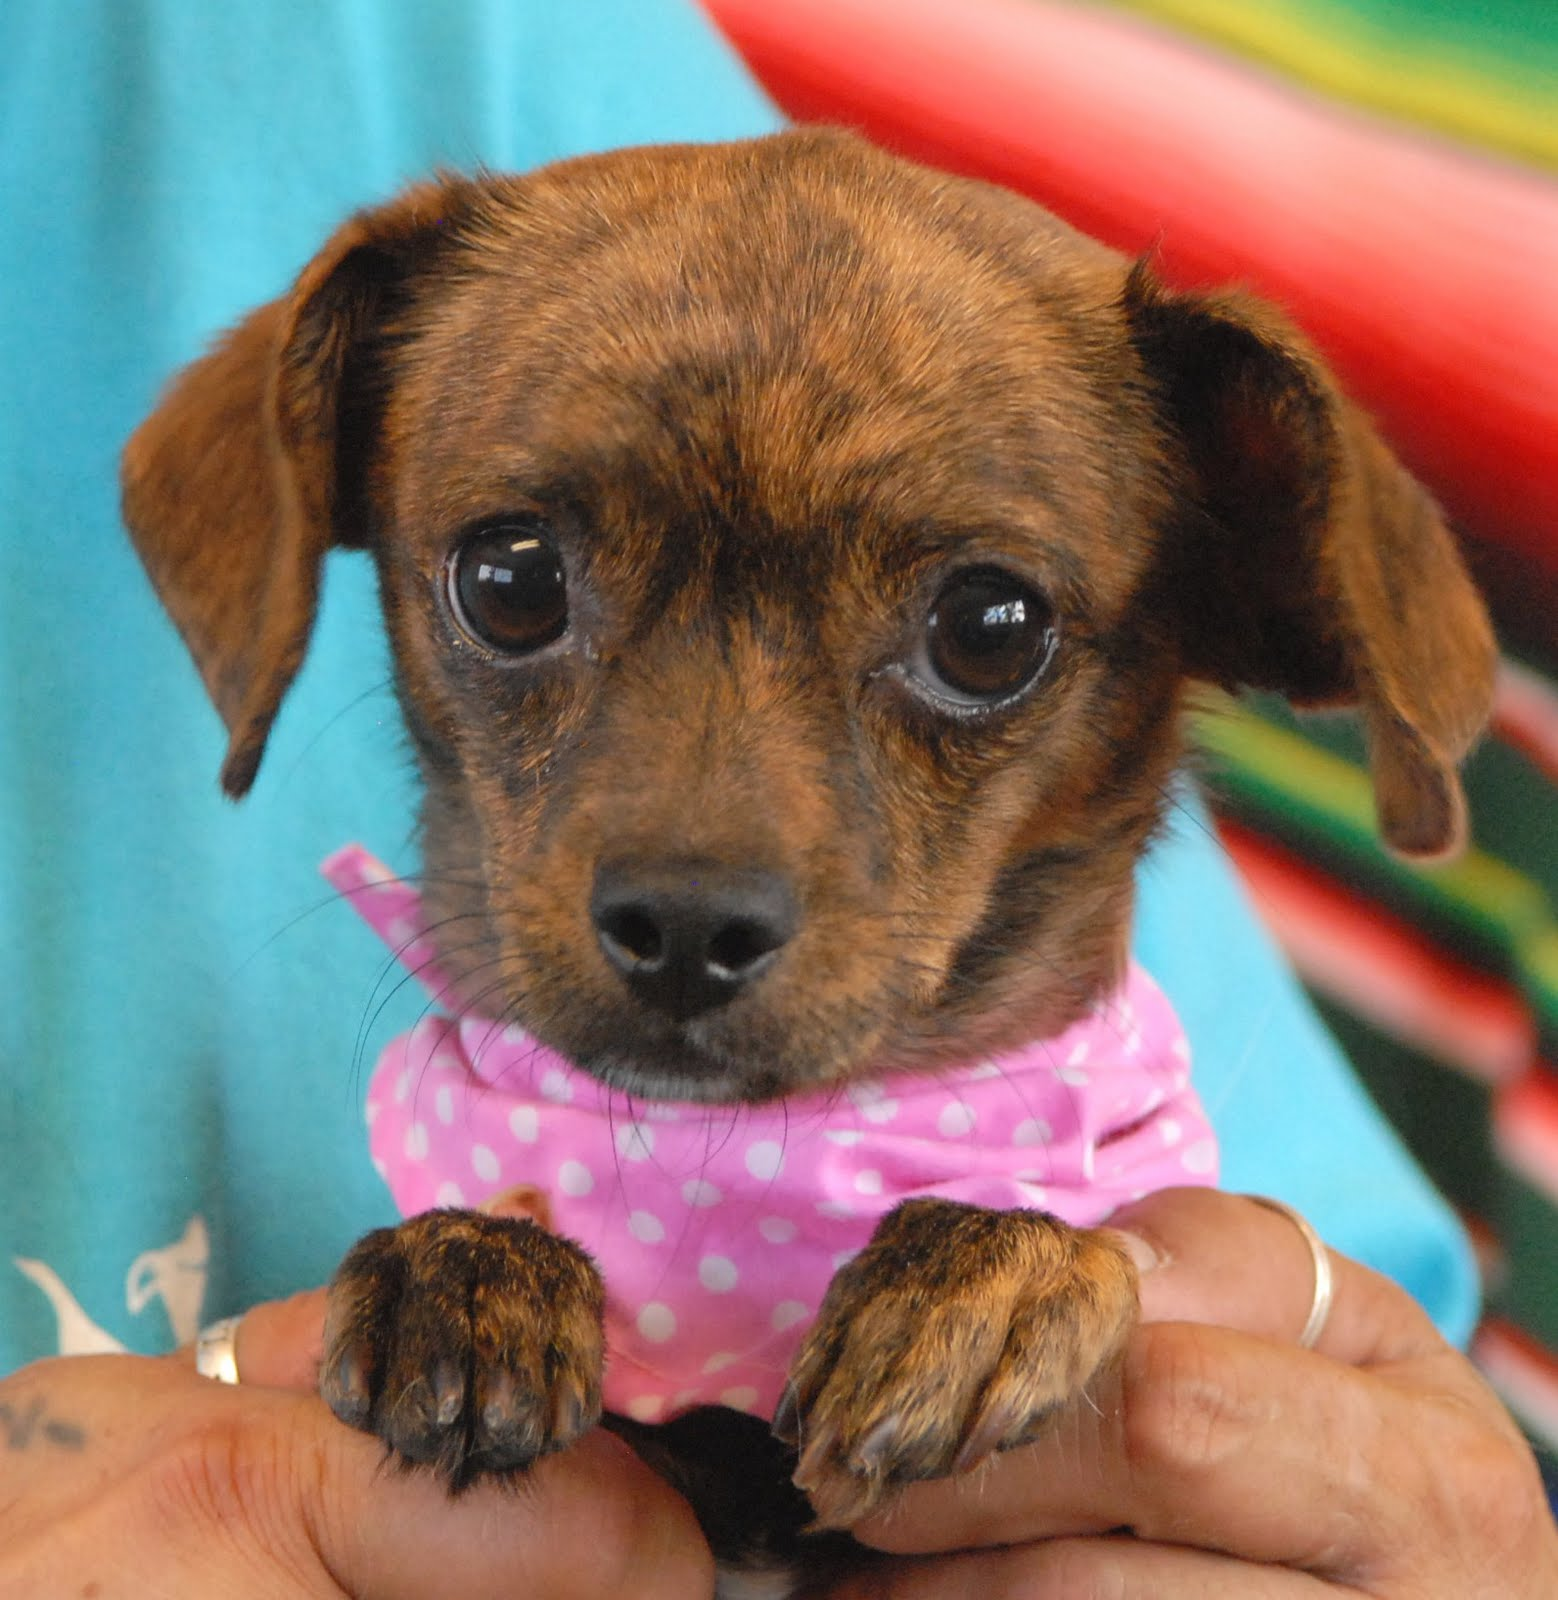 Pics photos dachshund chihuahua dog mix dogs pictures photos pics - Can I Snuggle With You